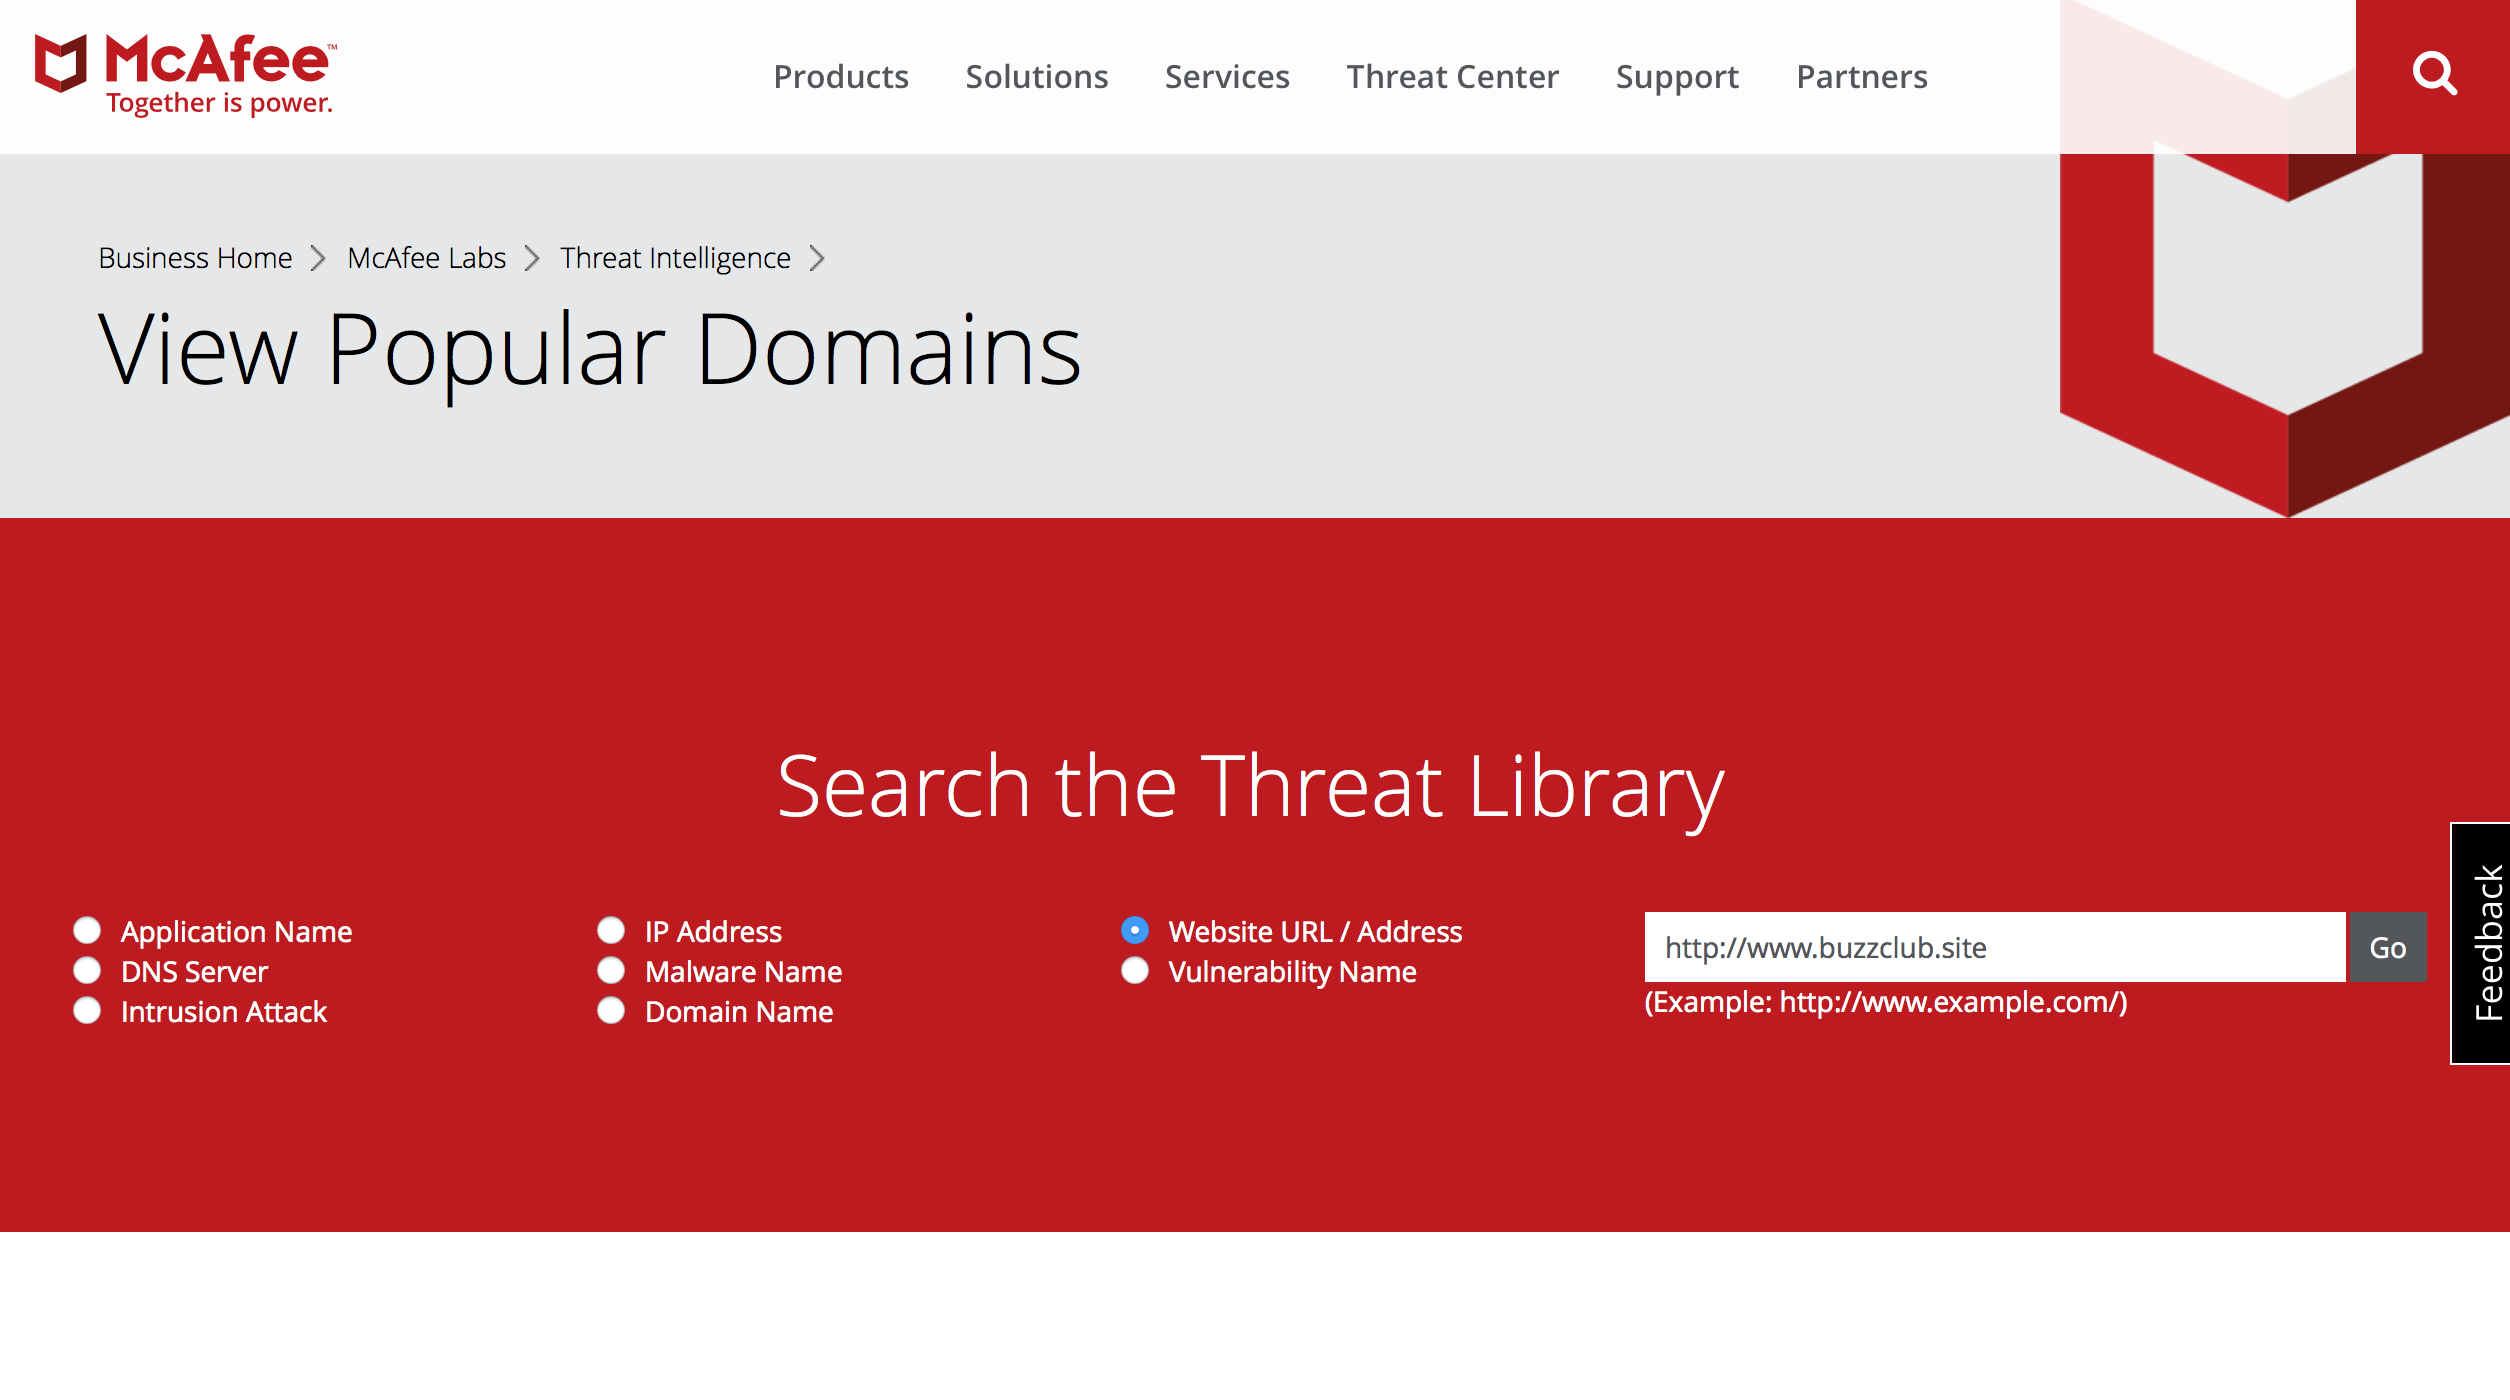 Search the Threat Library